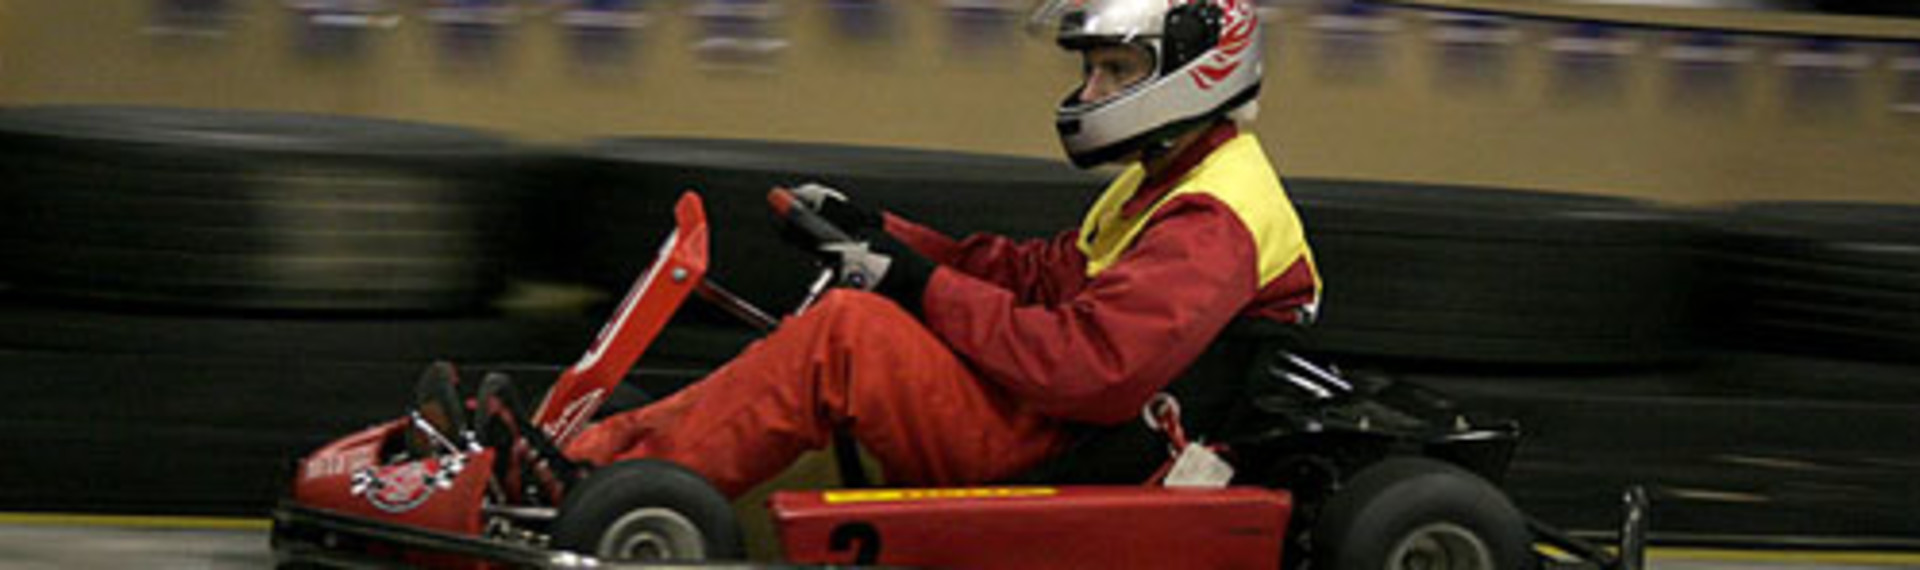 Sofia Outdoor Karting image